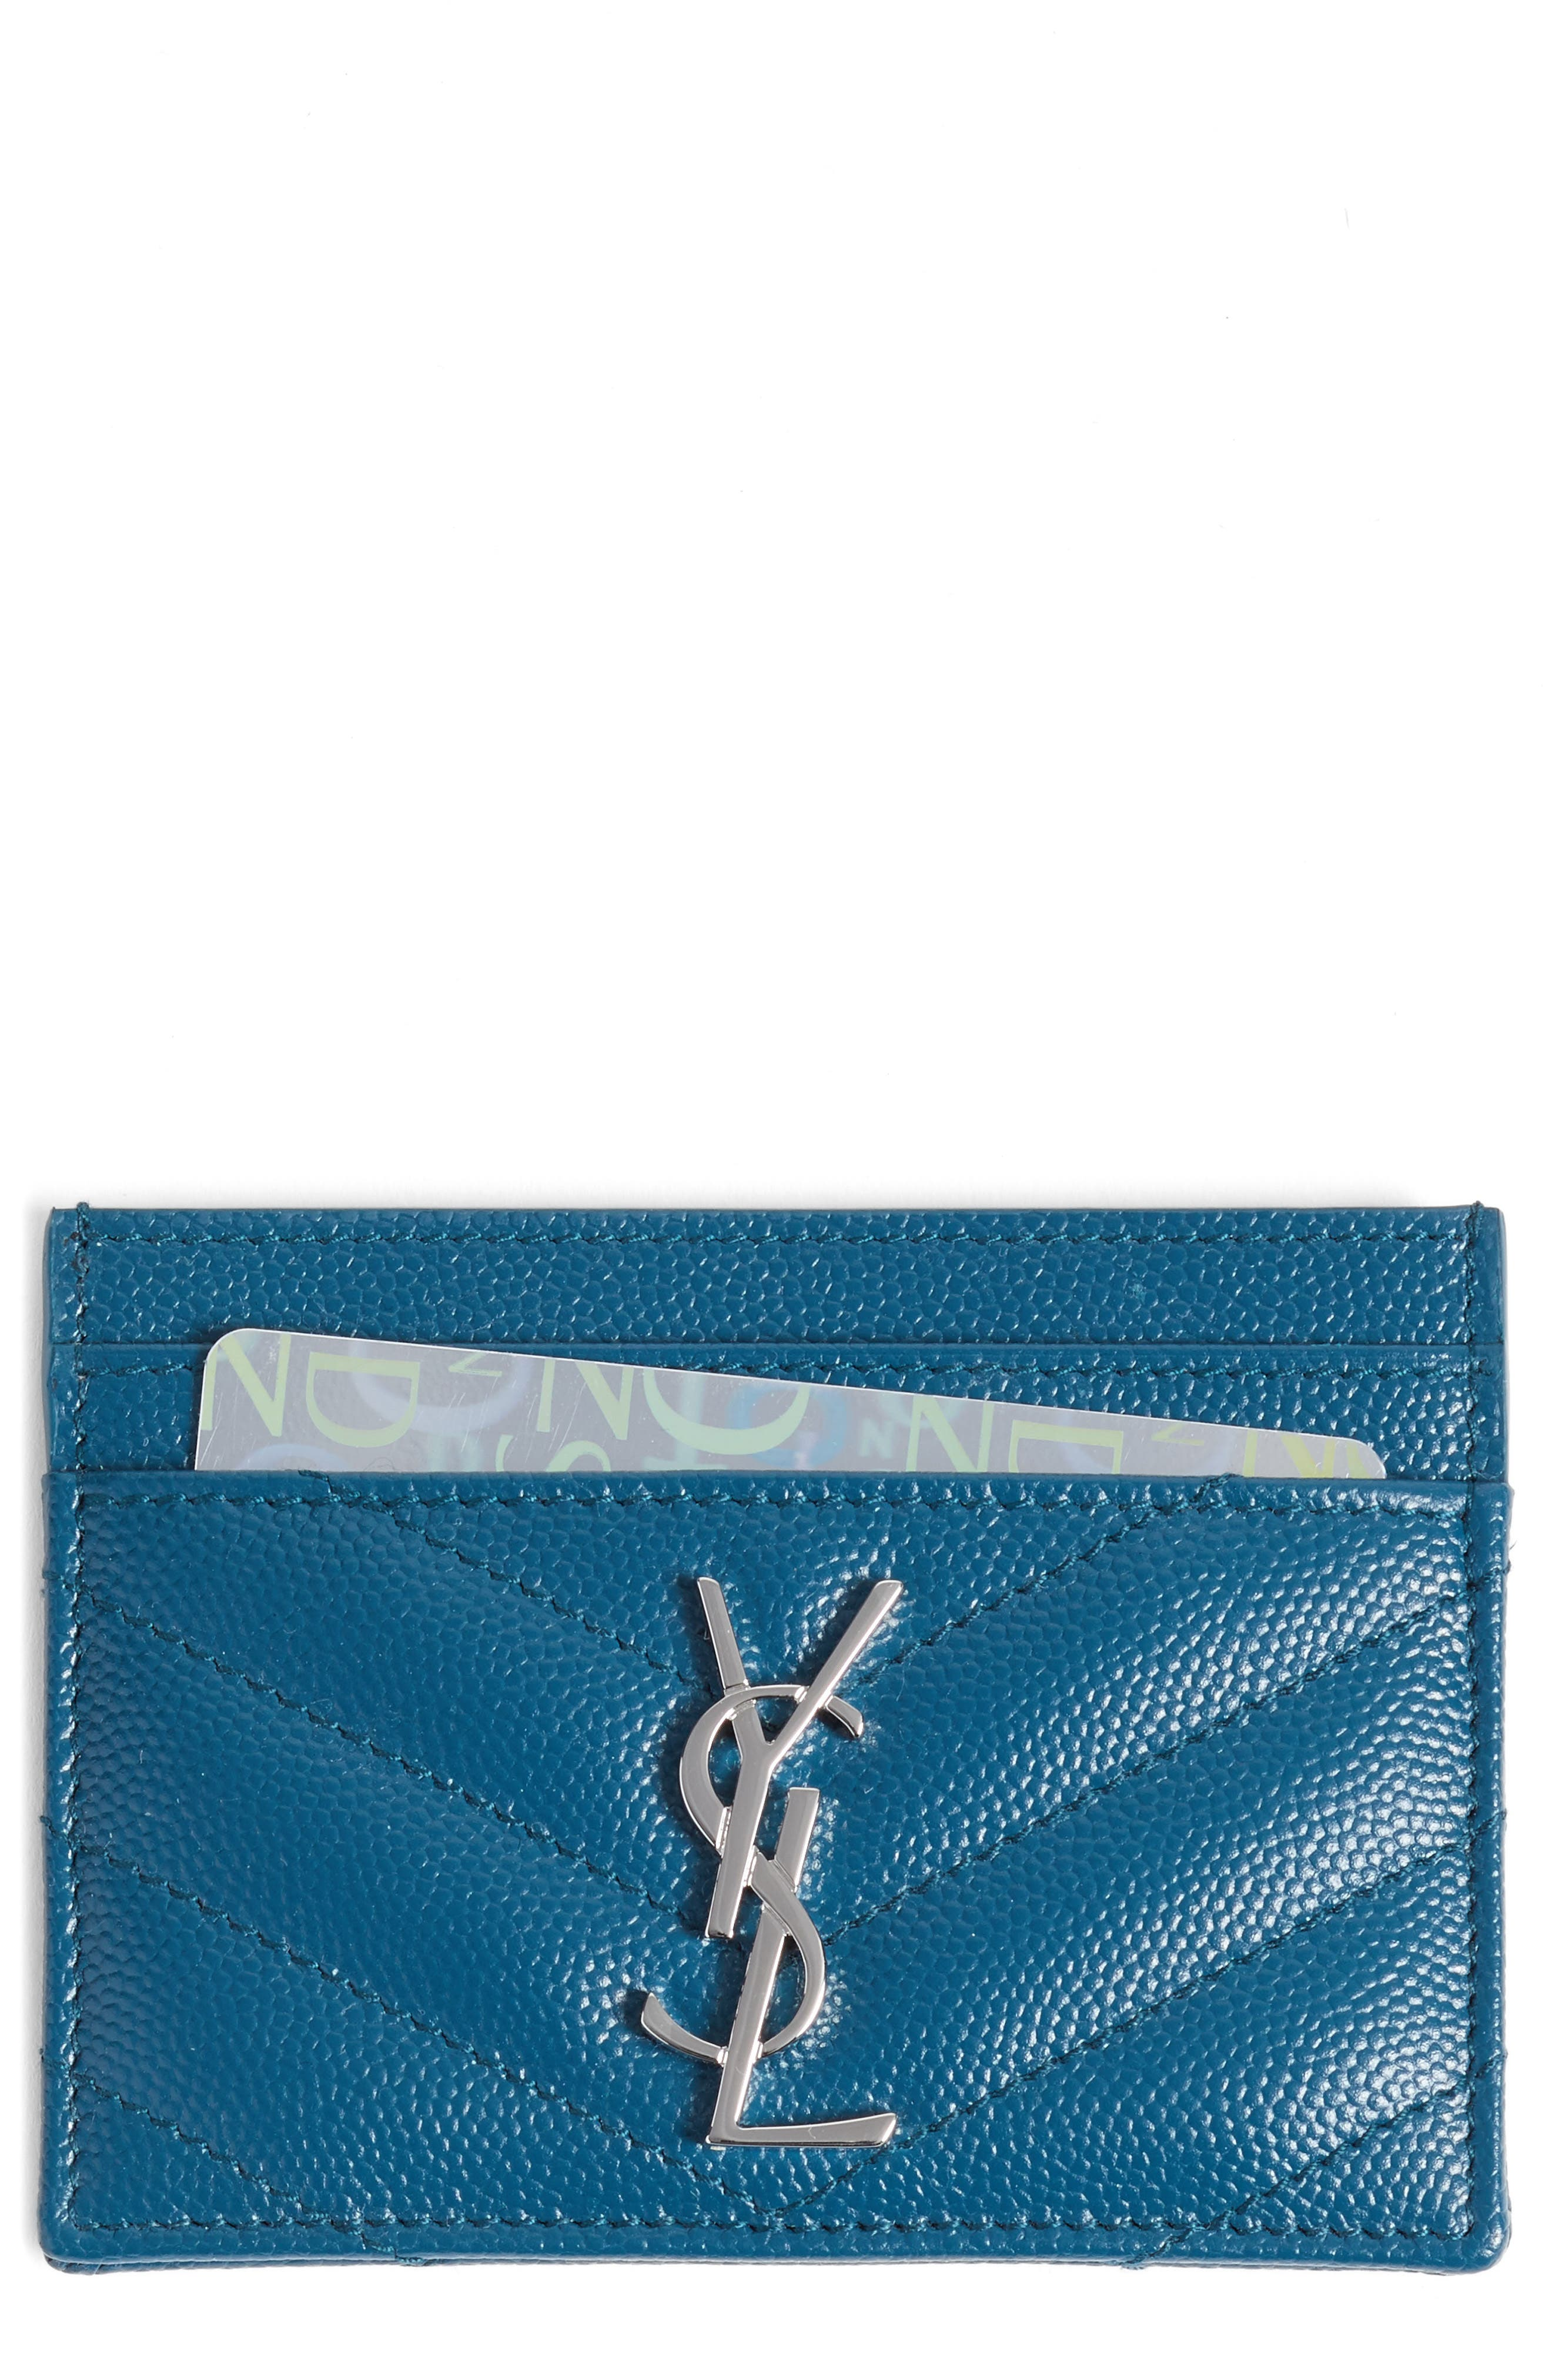 Saint Laurent 'Monogram' Credit Card Case